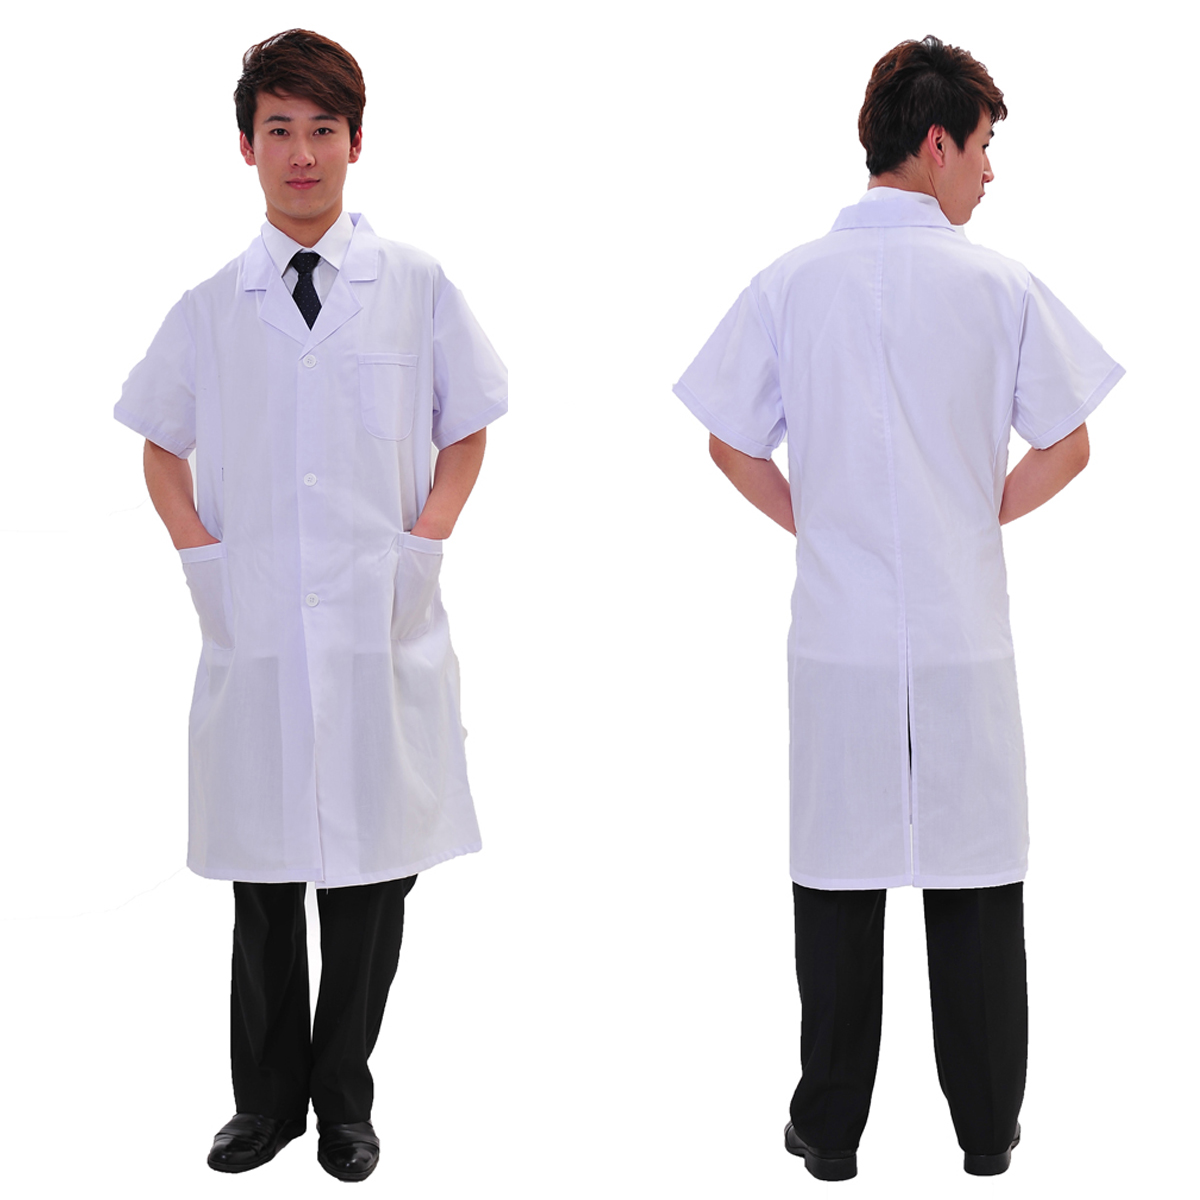 Sleeve long sleeved doctors white coat lab coats overalls men